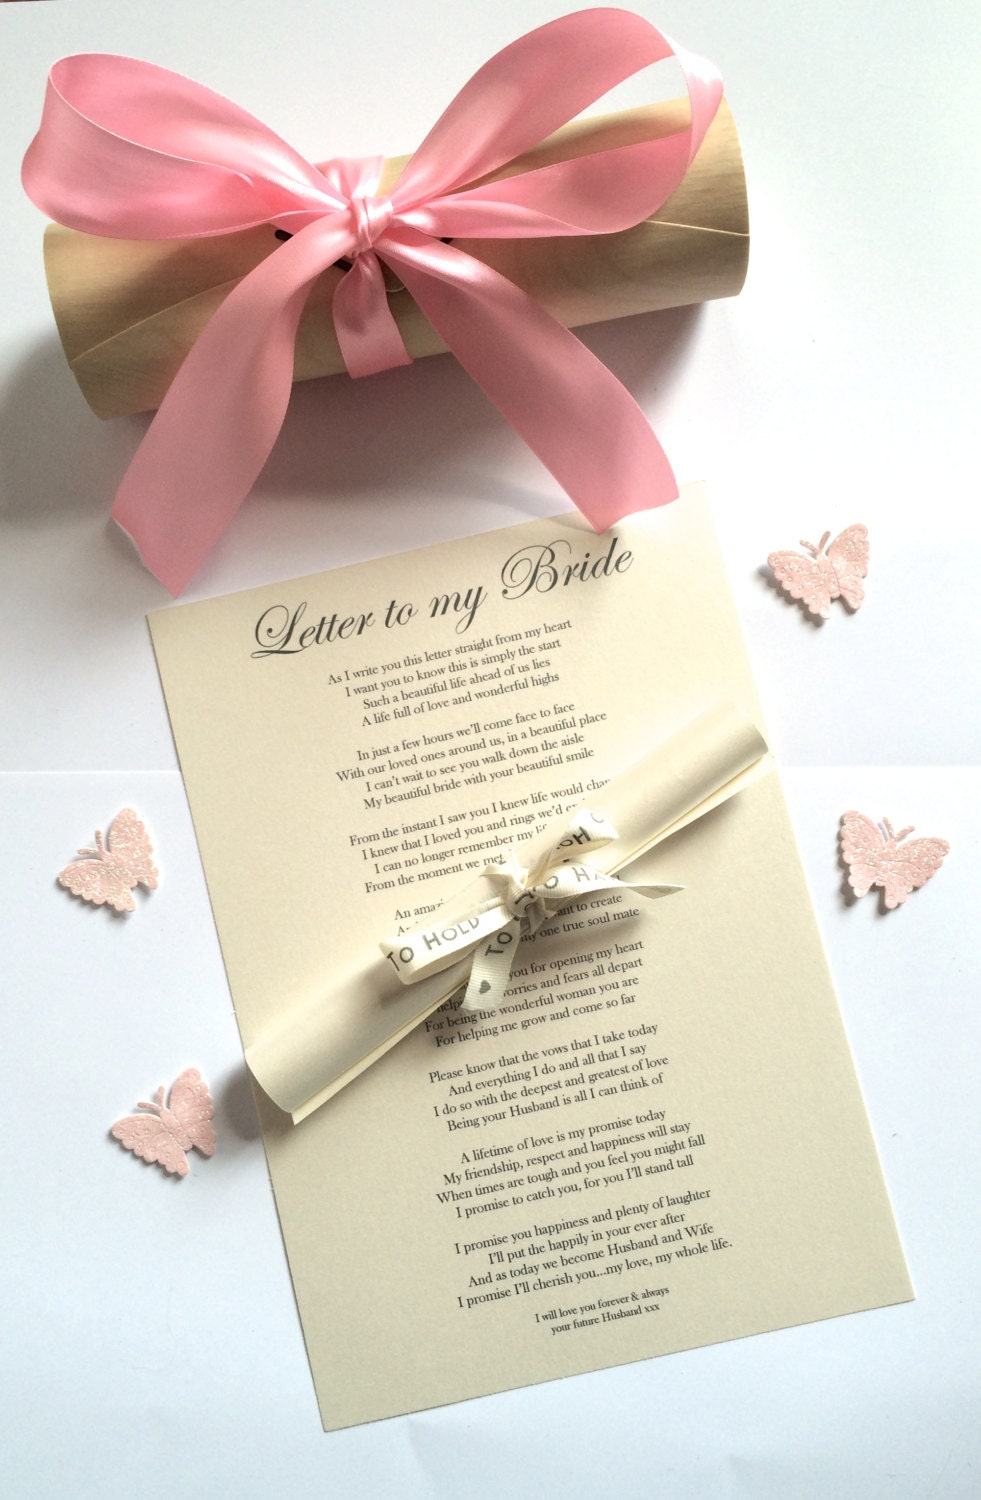 Personalised Wedding Gift Bride : Wedding Gift for Bride from Groom on Wedding Day Personalised